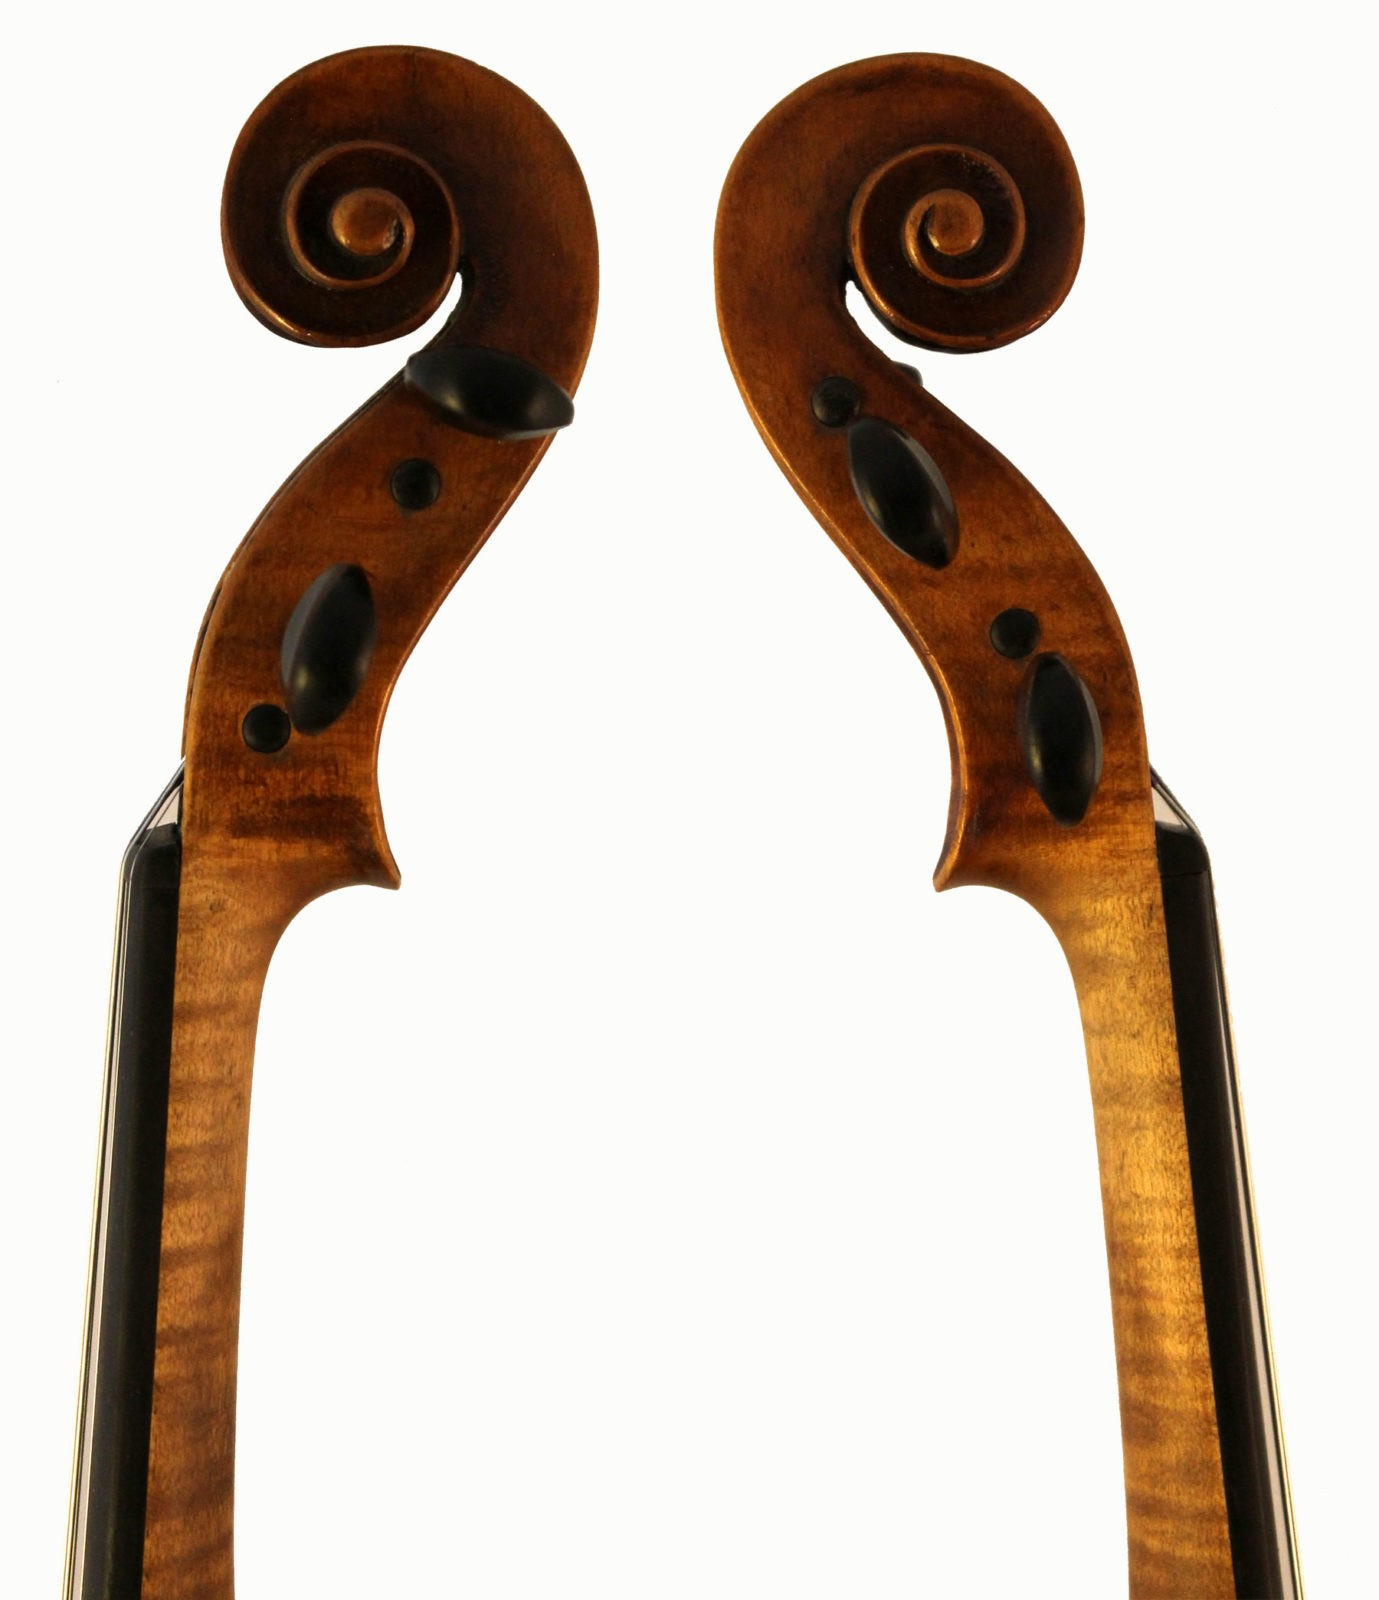 Roth Lederer violin scroll sides